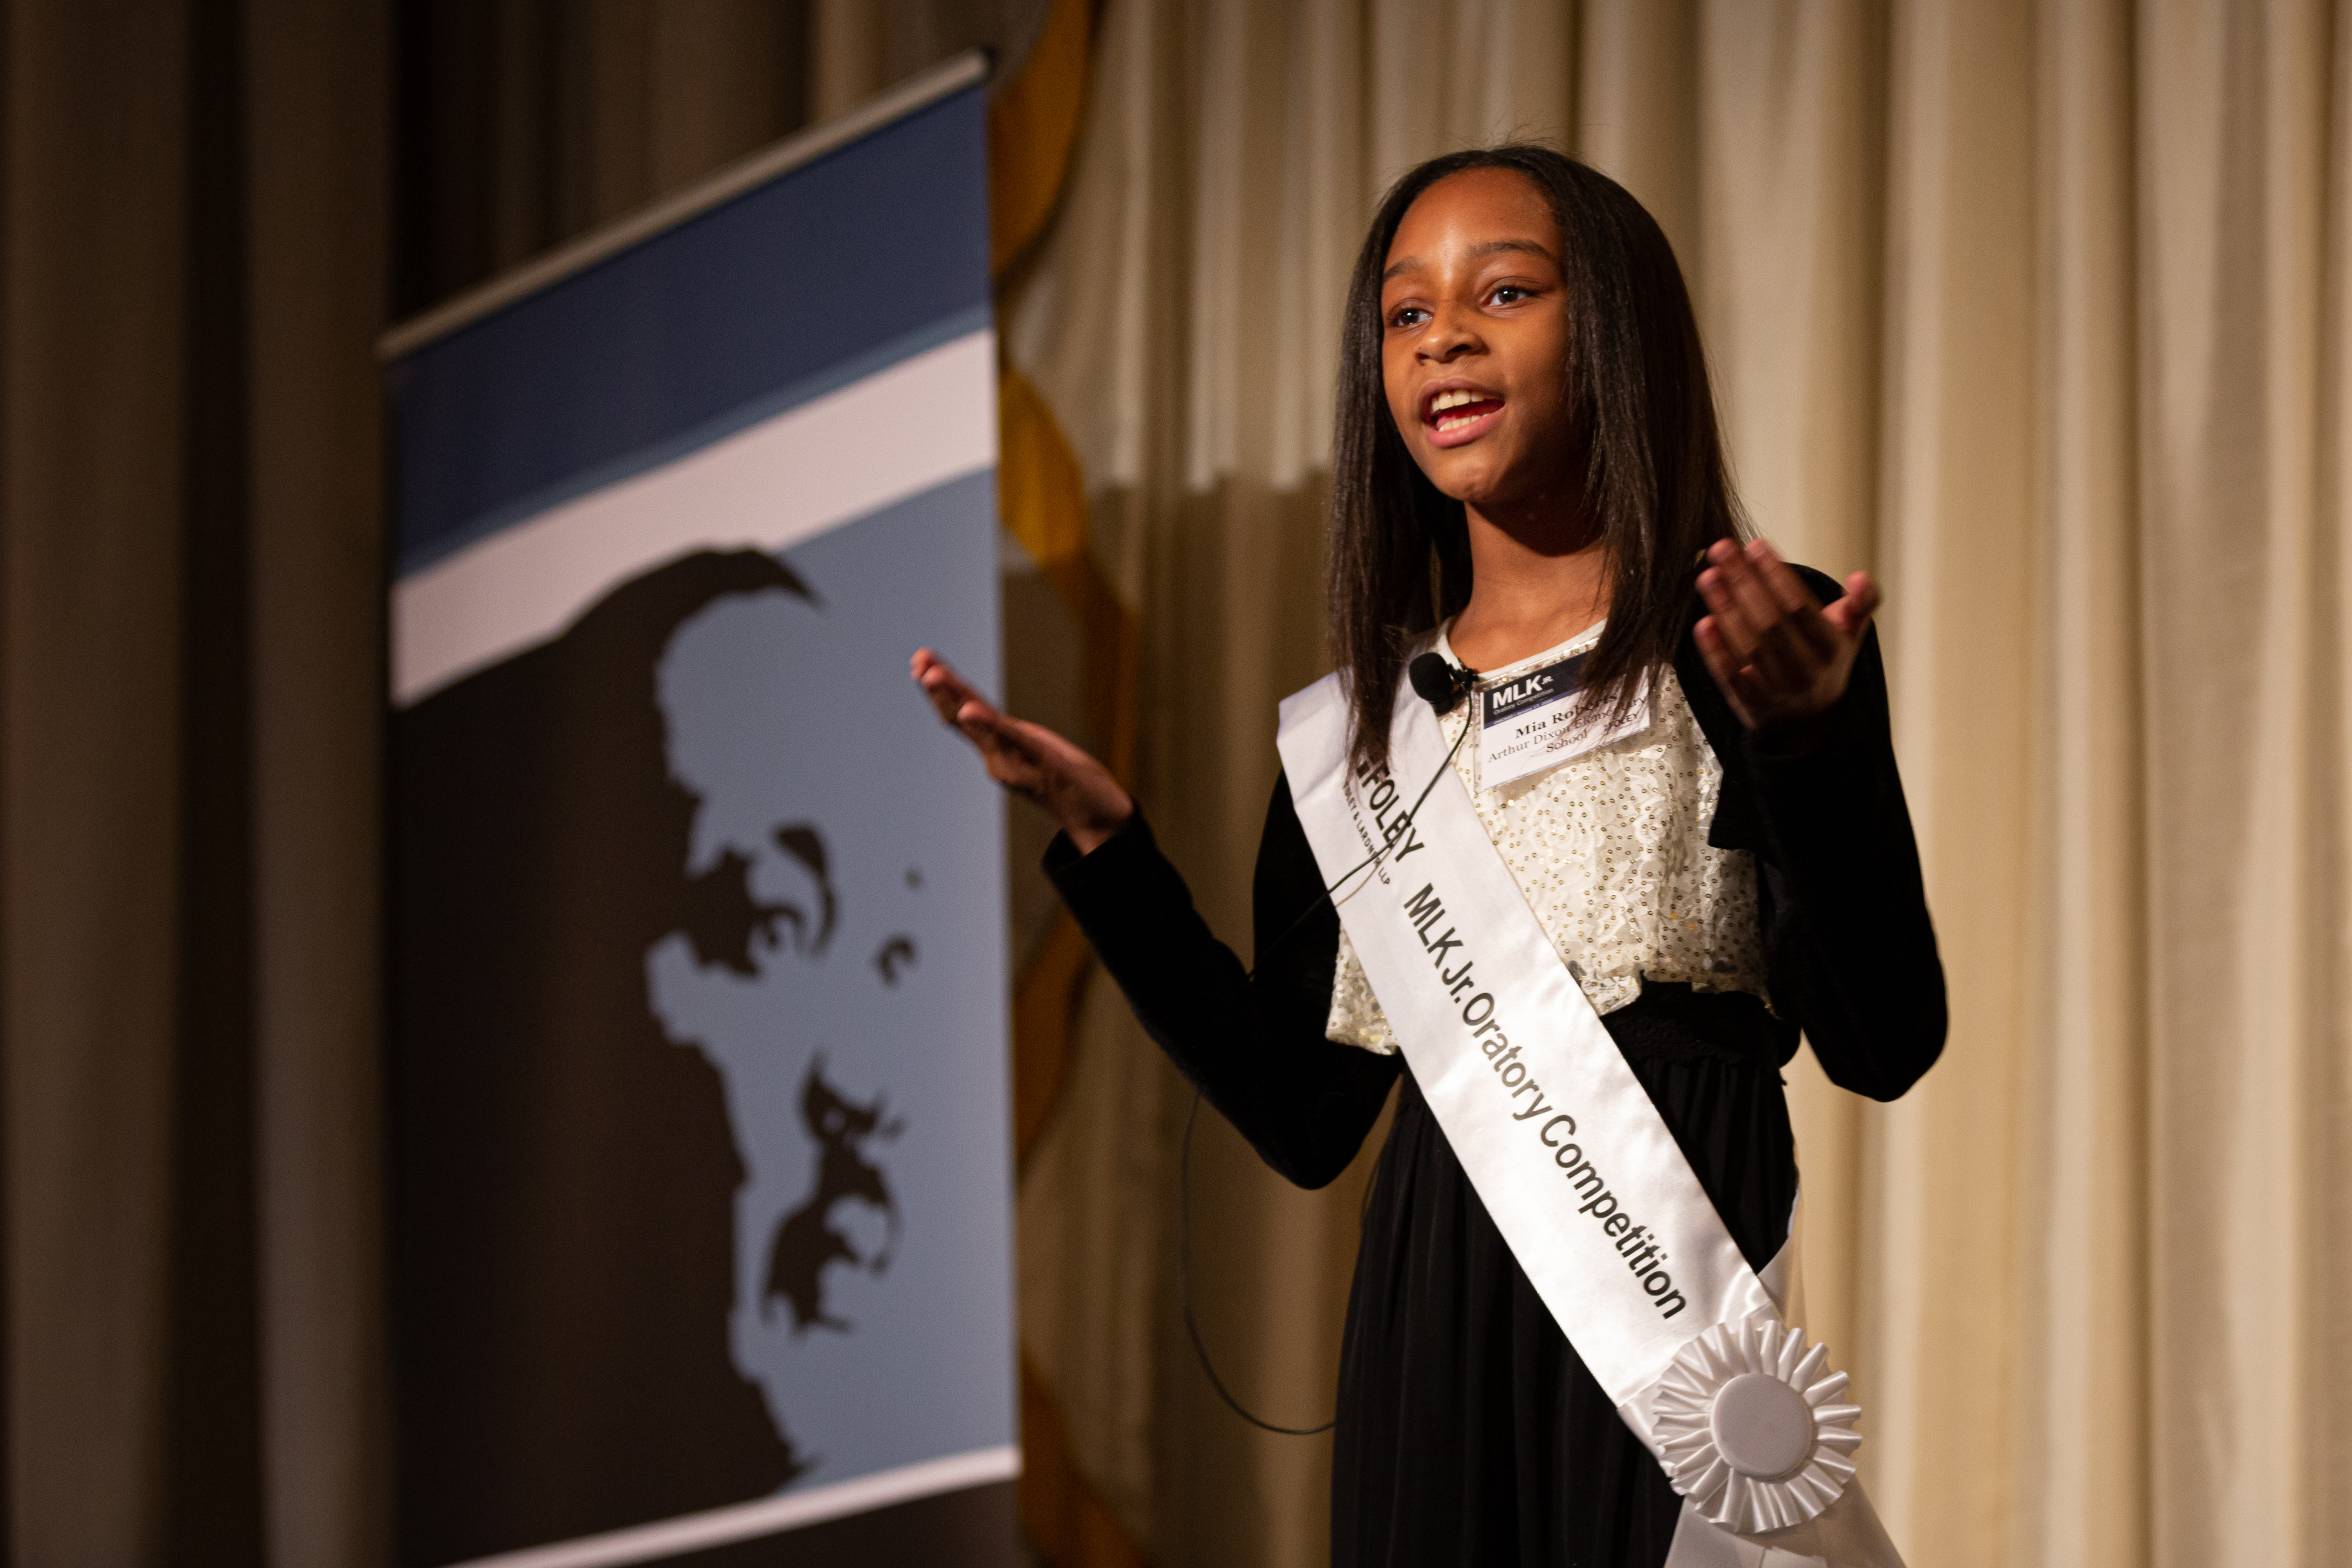 Mia Roberts, 9, a student from Arthur Dixon Elementary, speaks to the audience Friday during a Martin Luther King Jr. oratory competition at The Palmer House Hotel.